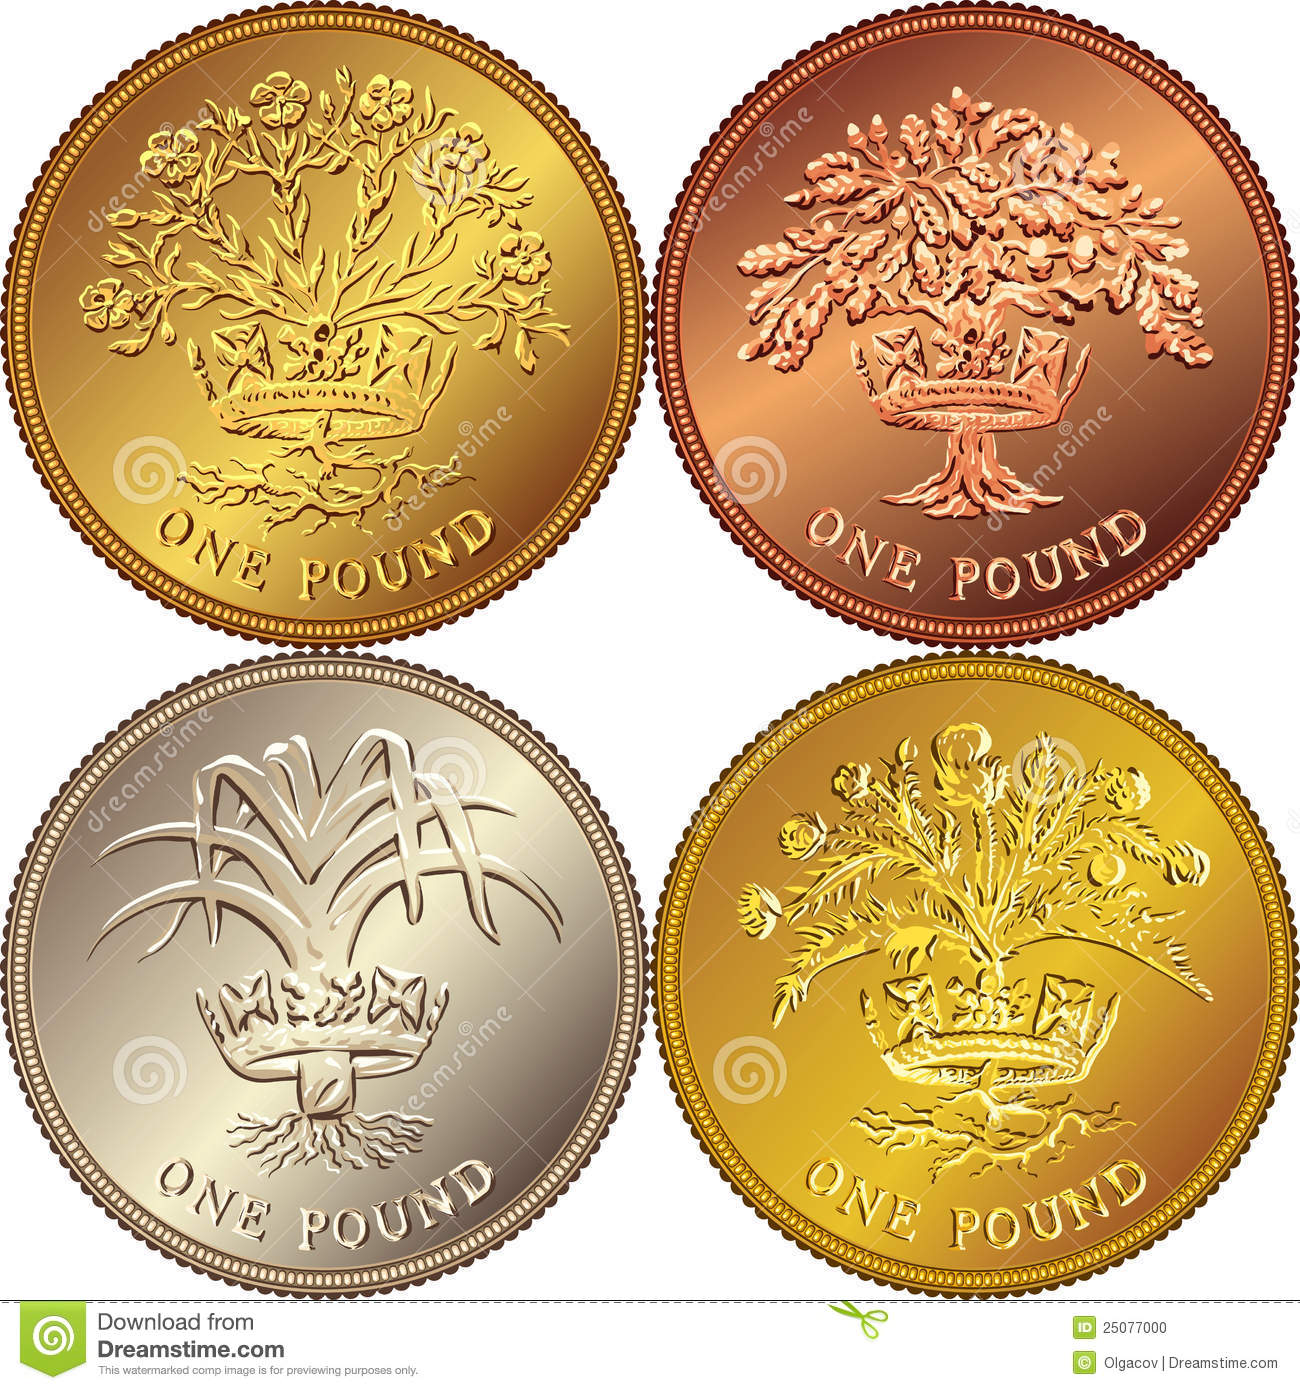 Lamborghini Gallardo Accessories in addition 490781 as well Stock Photo Vector Set British Money Gold Coin One Pound Image25077000 furthermore Skoda Octavia Accessories additionally What Was James Reids Birthday Gift To Nadine Lustre. on sterling audio